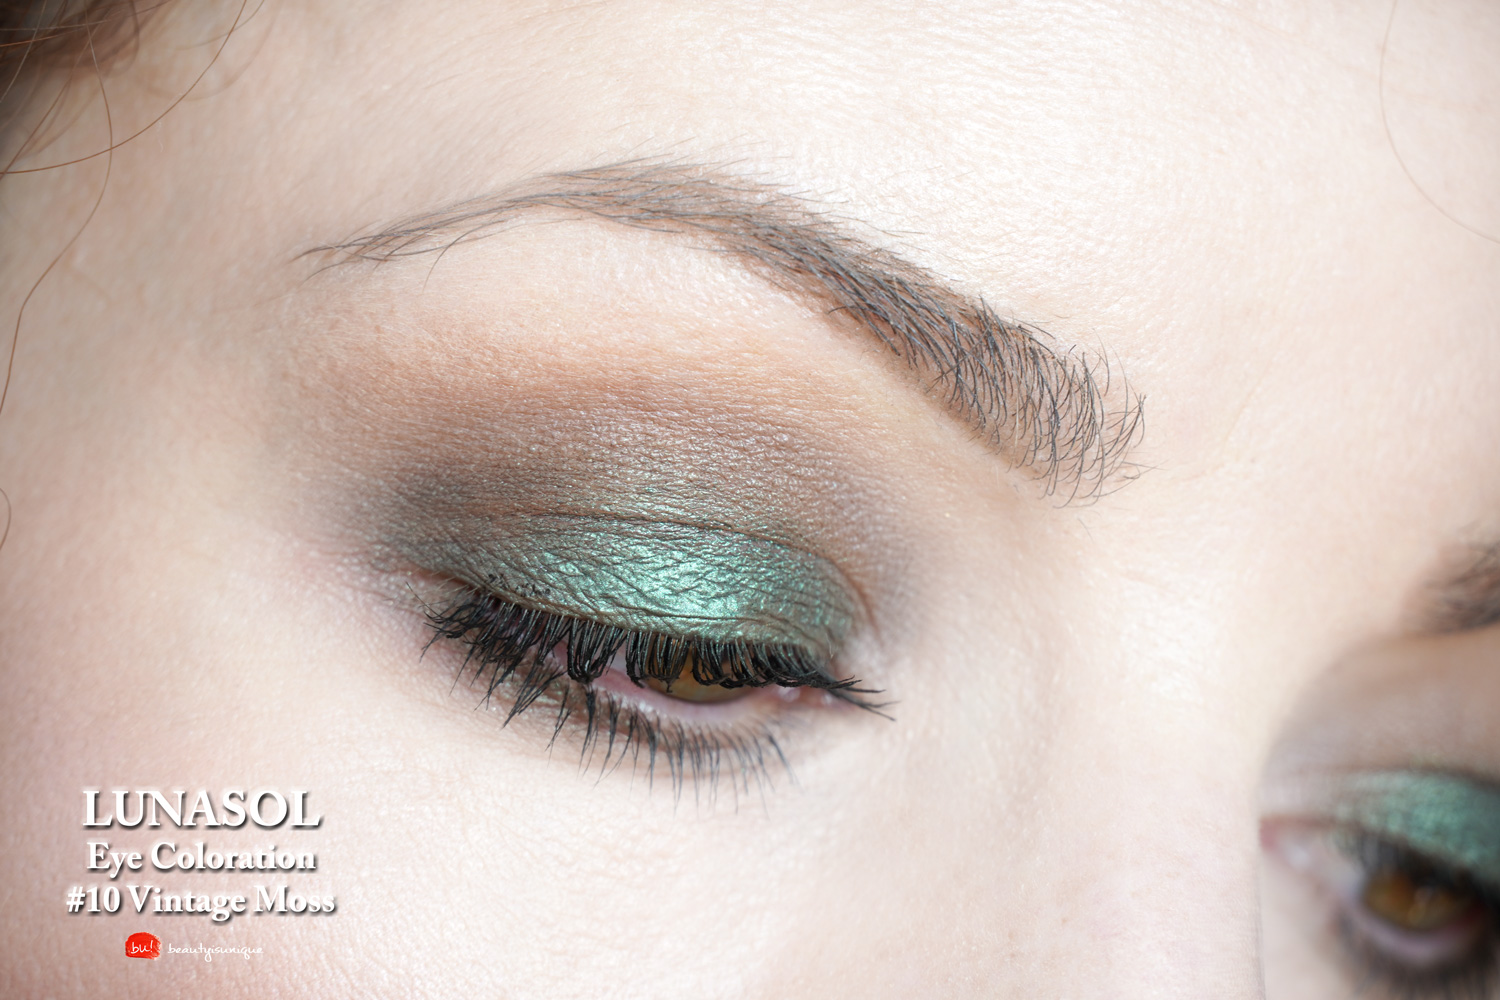 lunasol-10-vontage-moss-eye-coloration